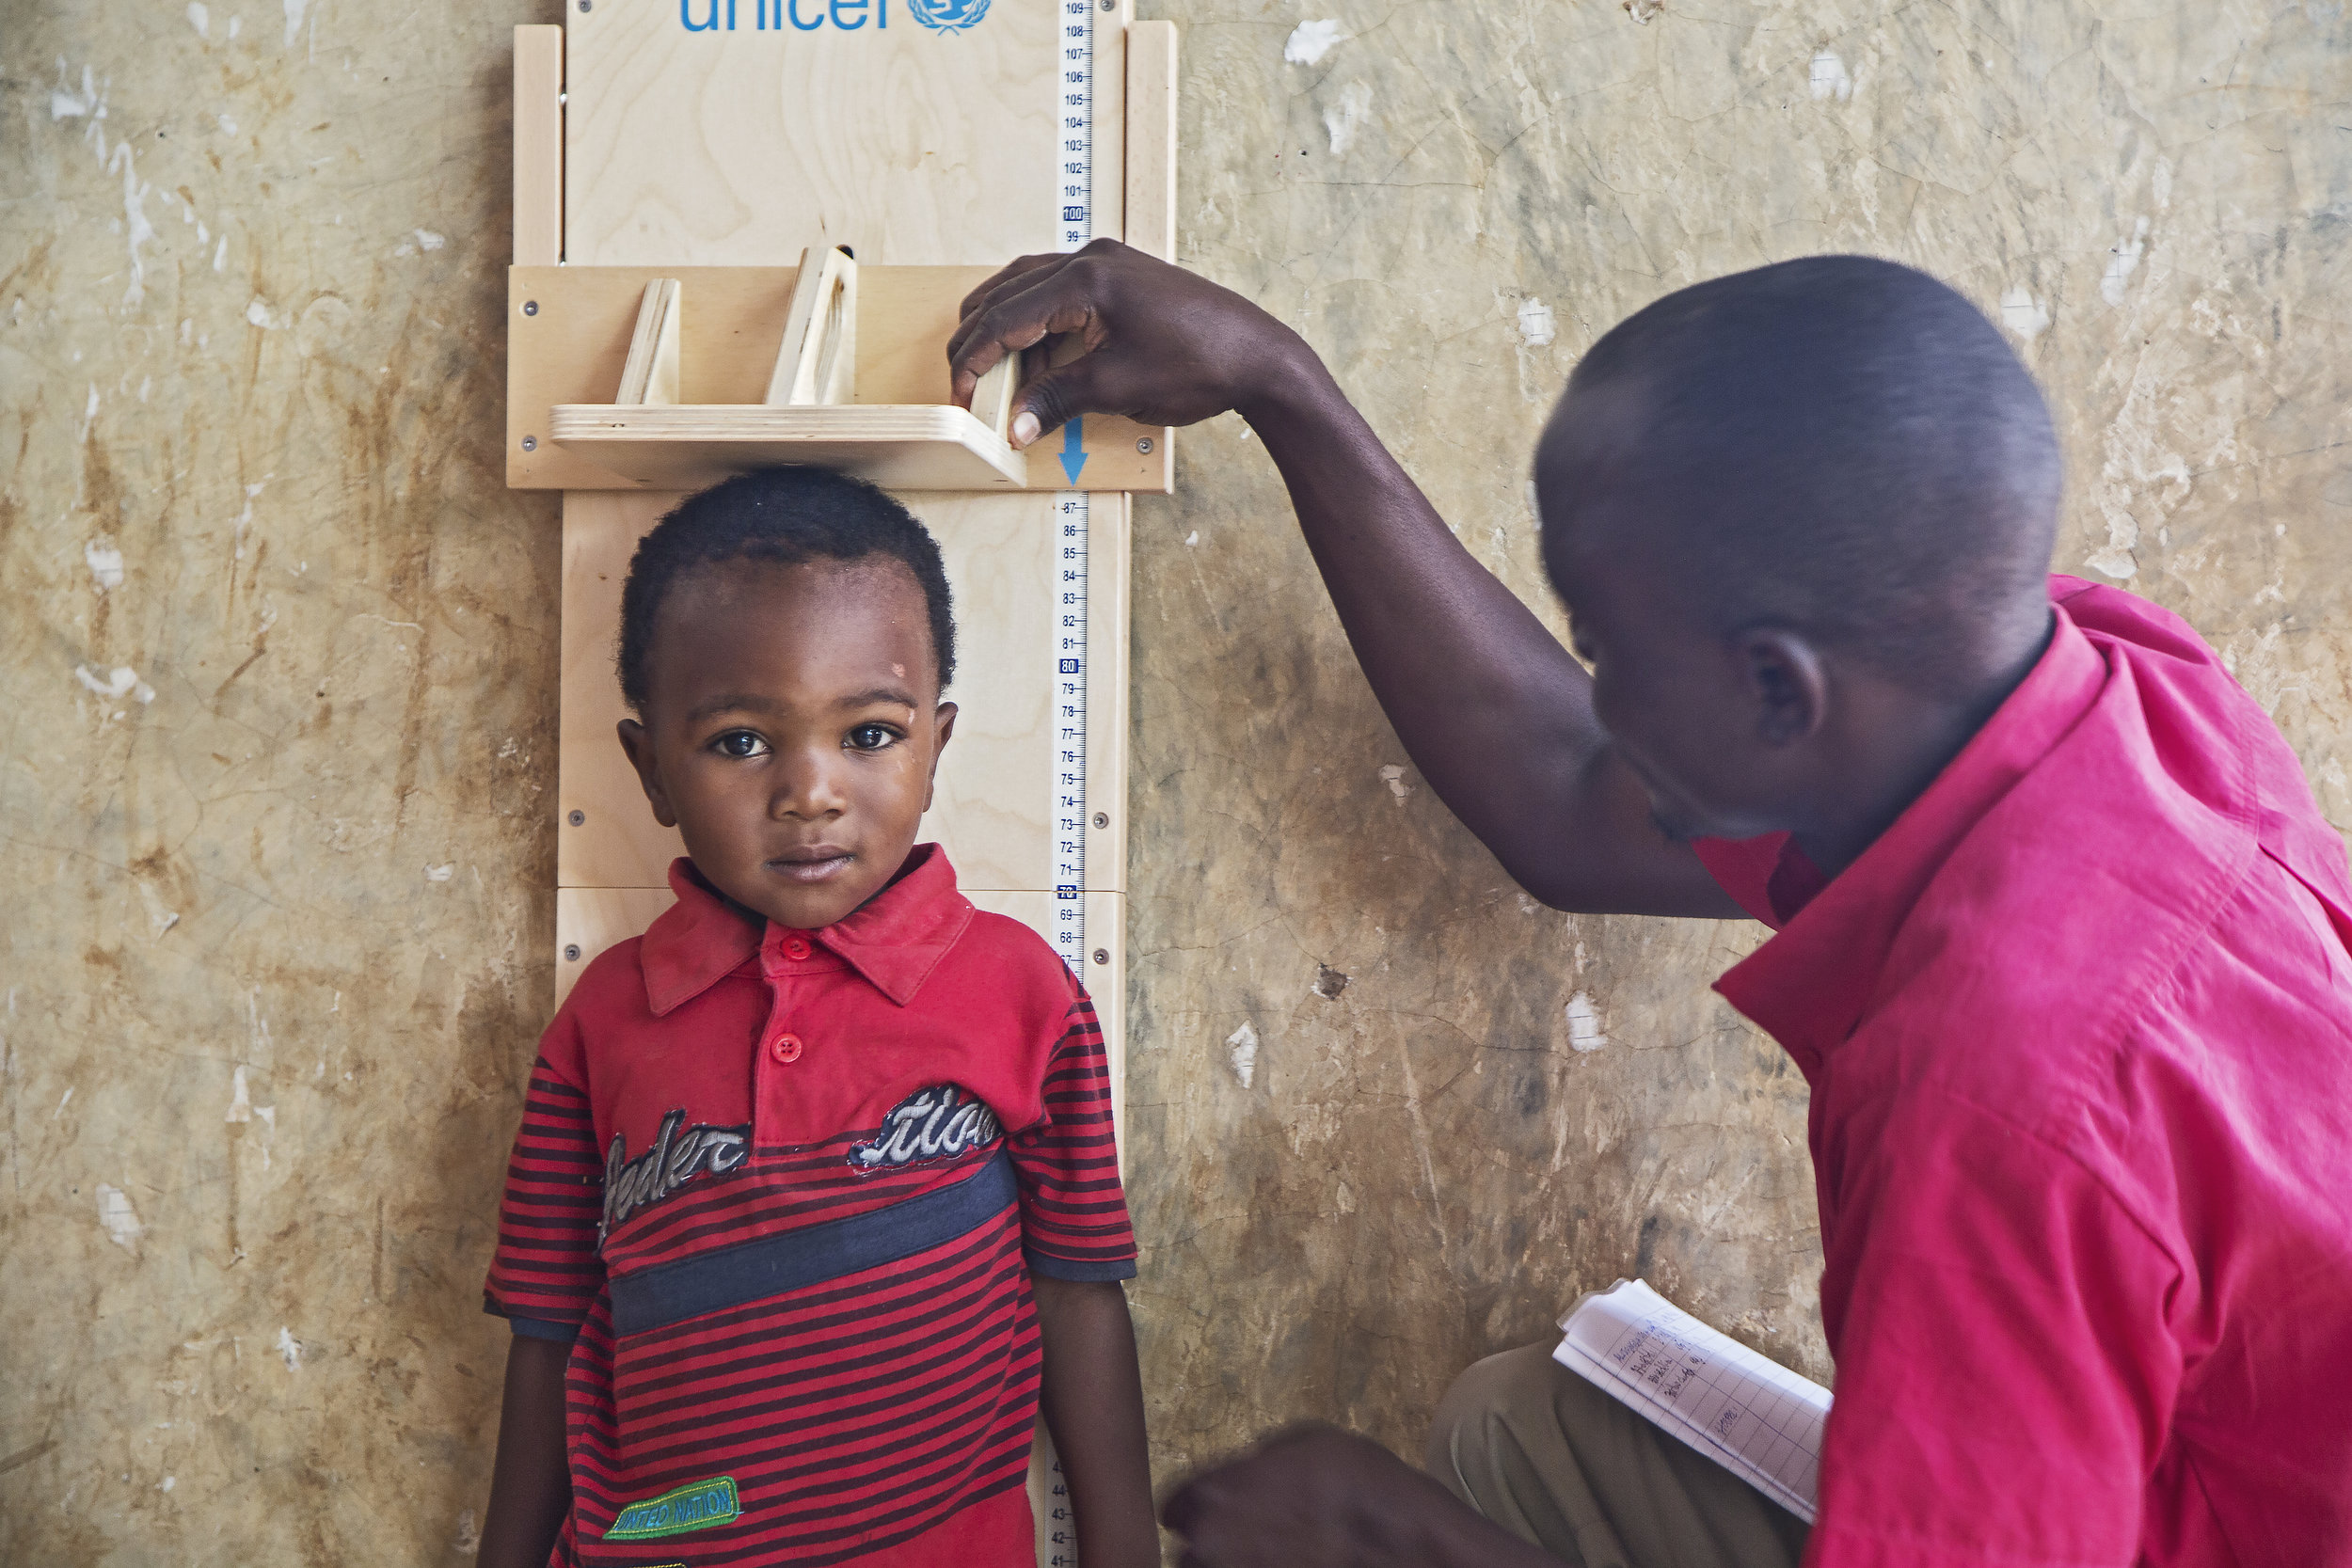 Measuring a child in the Songwe region of Tanzania as part of the effort to reduce stunting in the region.